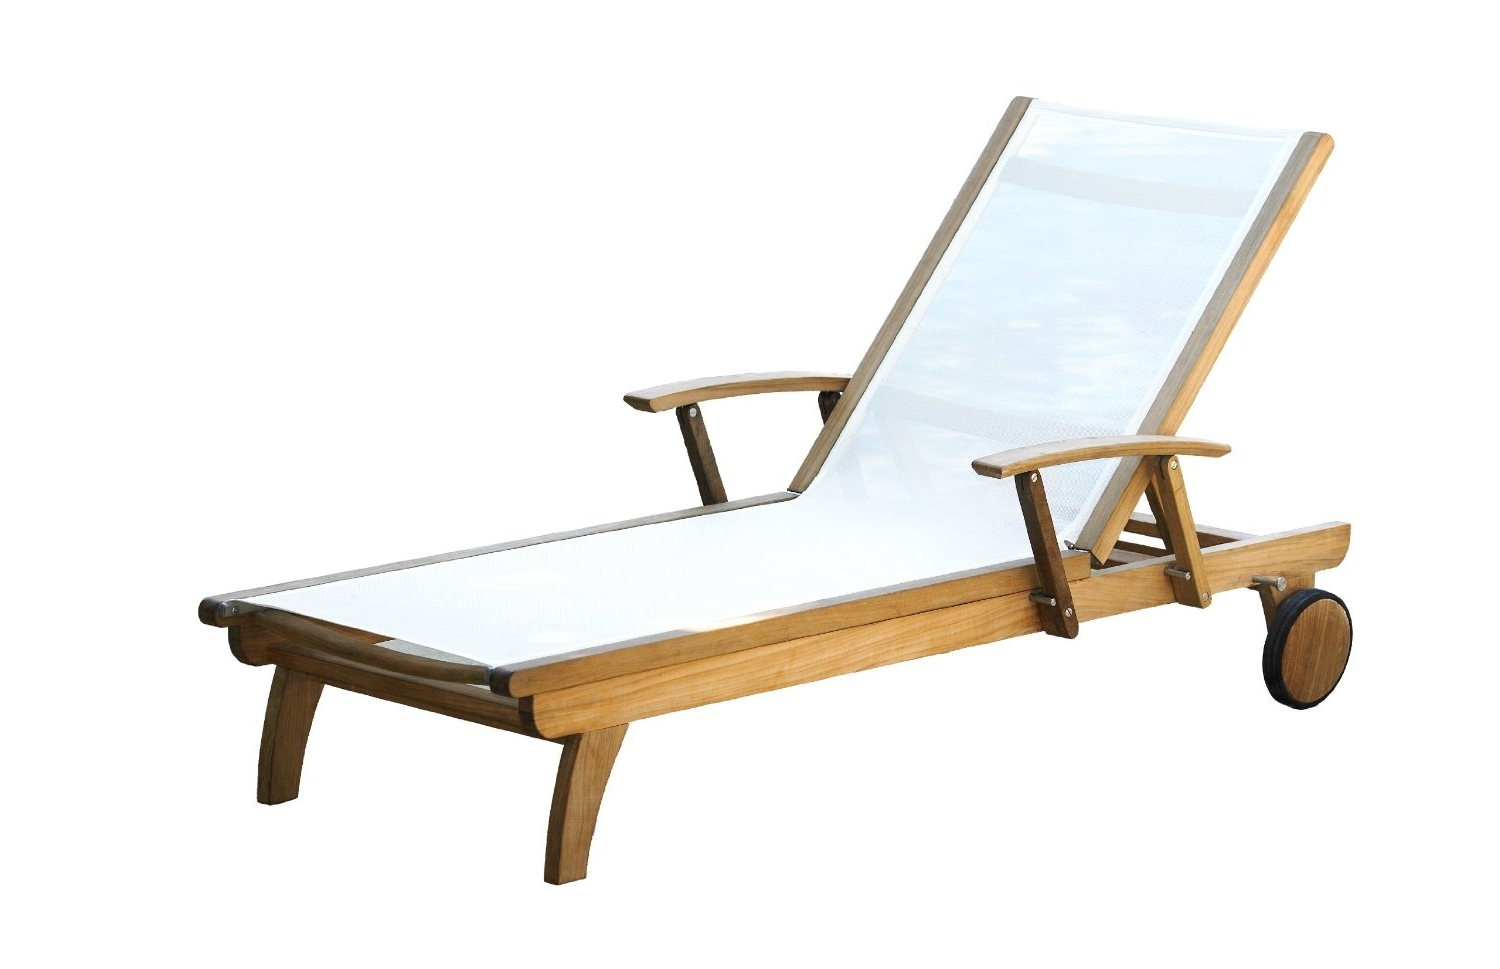 Teak Chaise Lounge Chair – Teak Patio Furniture World With Newest Chaise Lounge Sun Chairs (View 8 of 15)